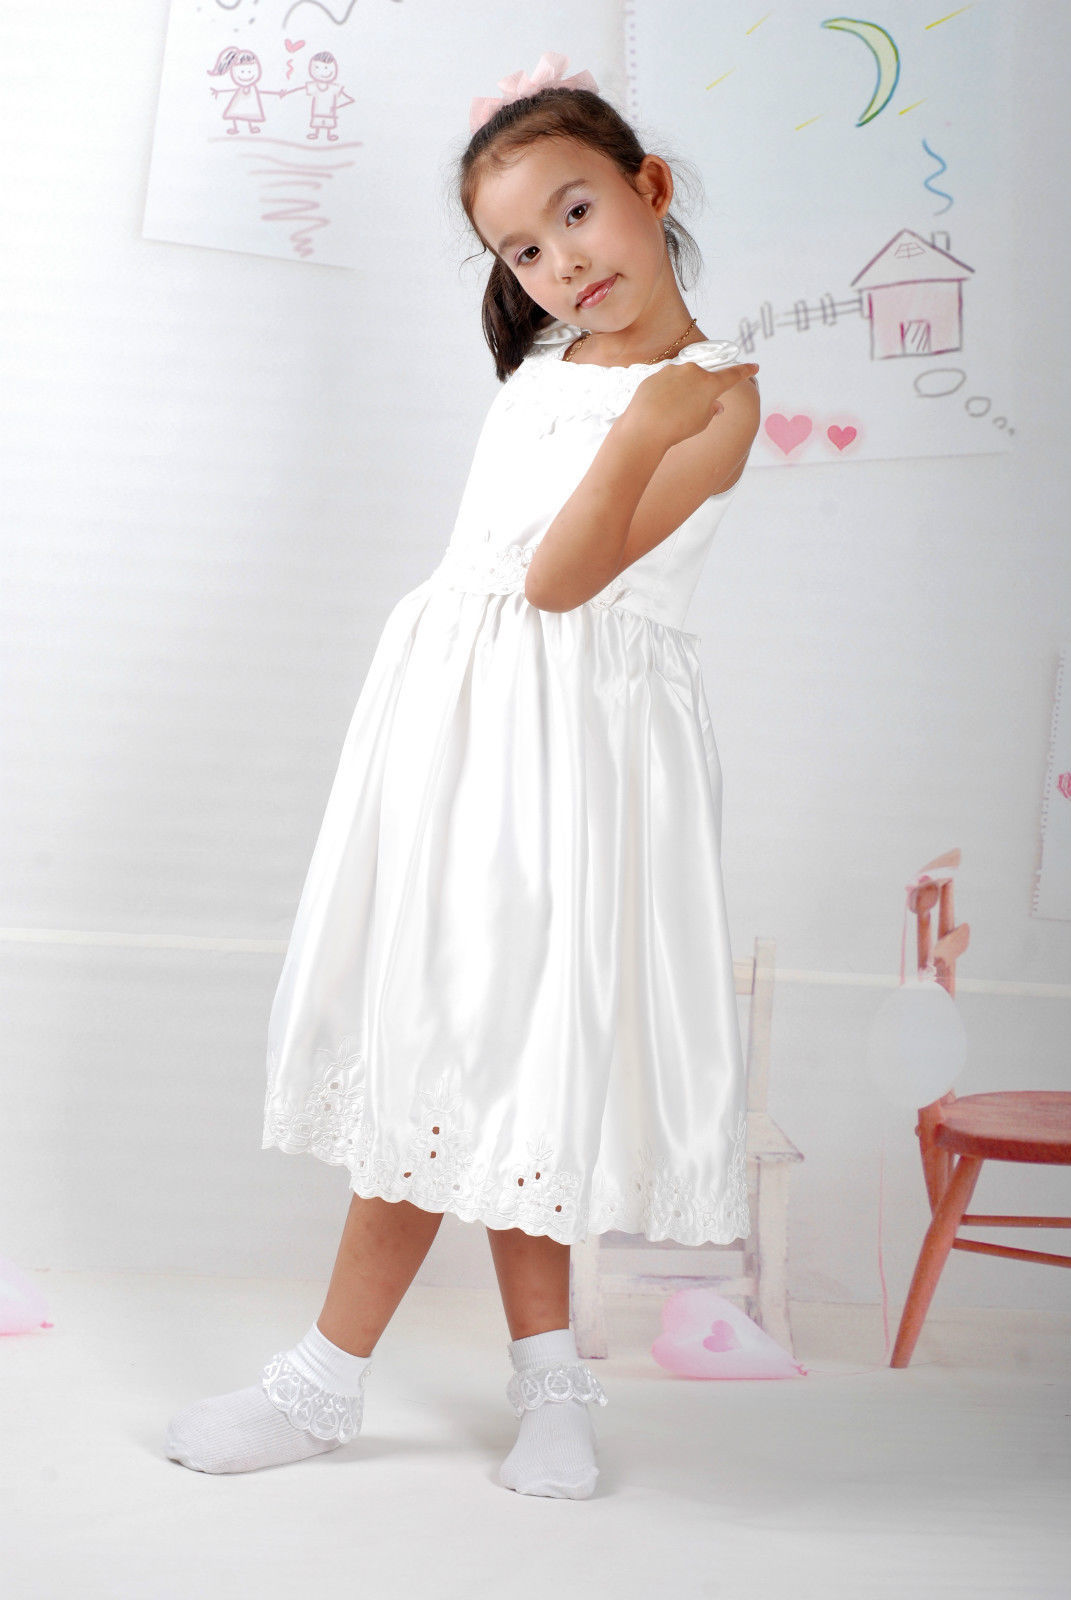 New Satin Flower Girl Party Bridesmaid Wedding Pageant Dress 18 Month to 5 Years image 3